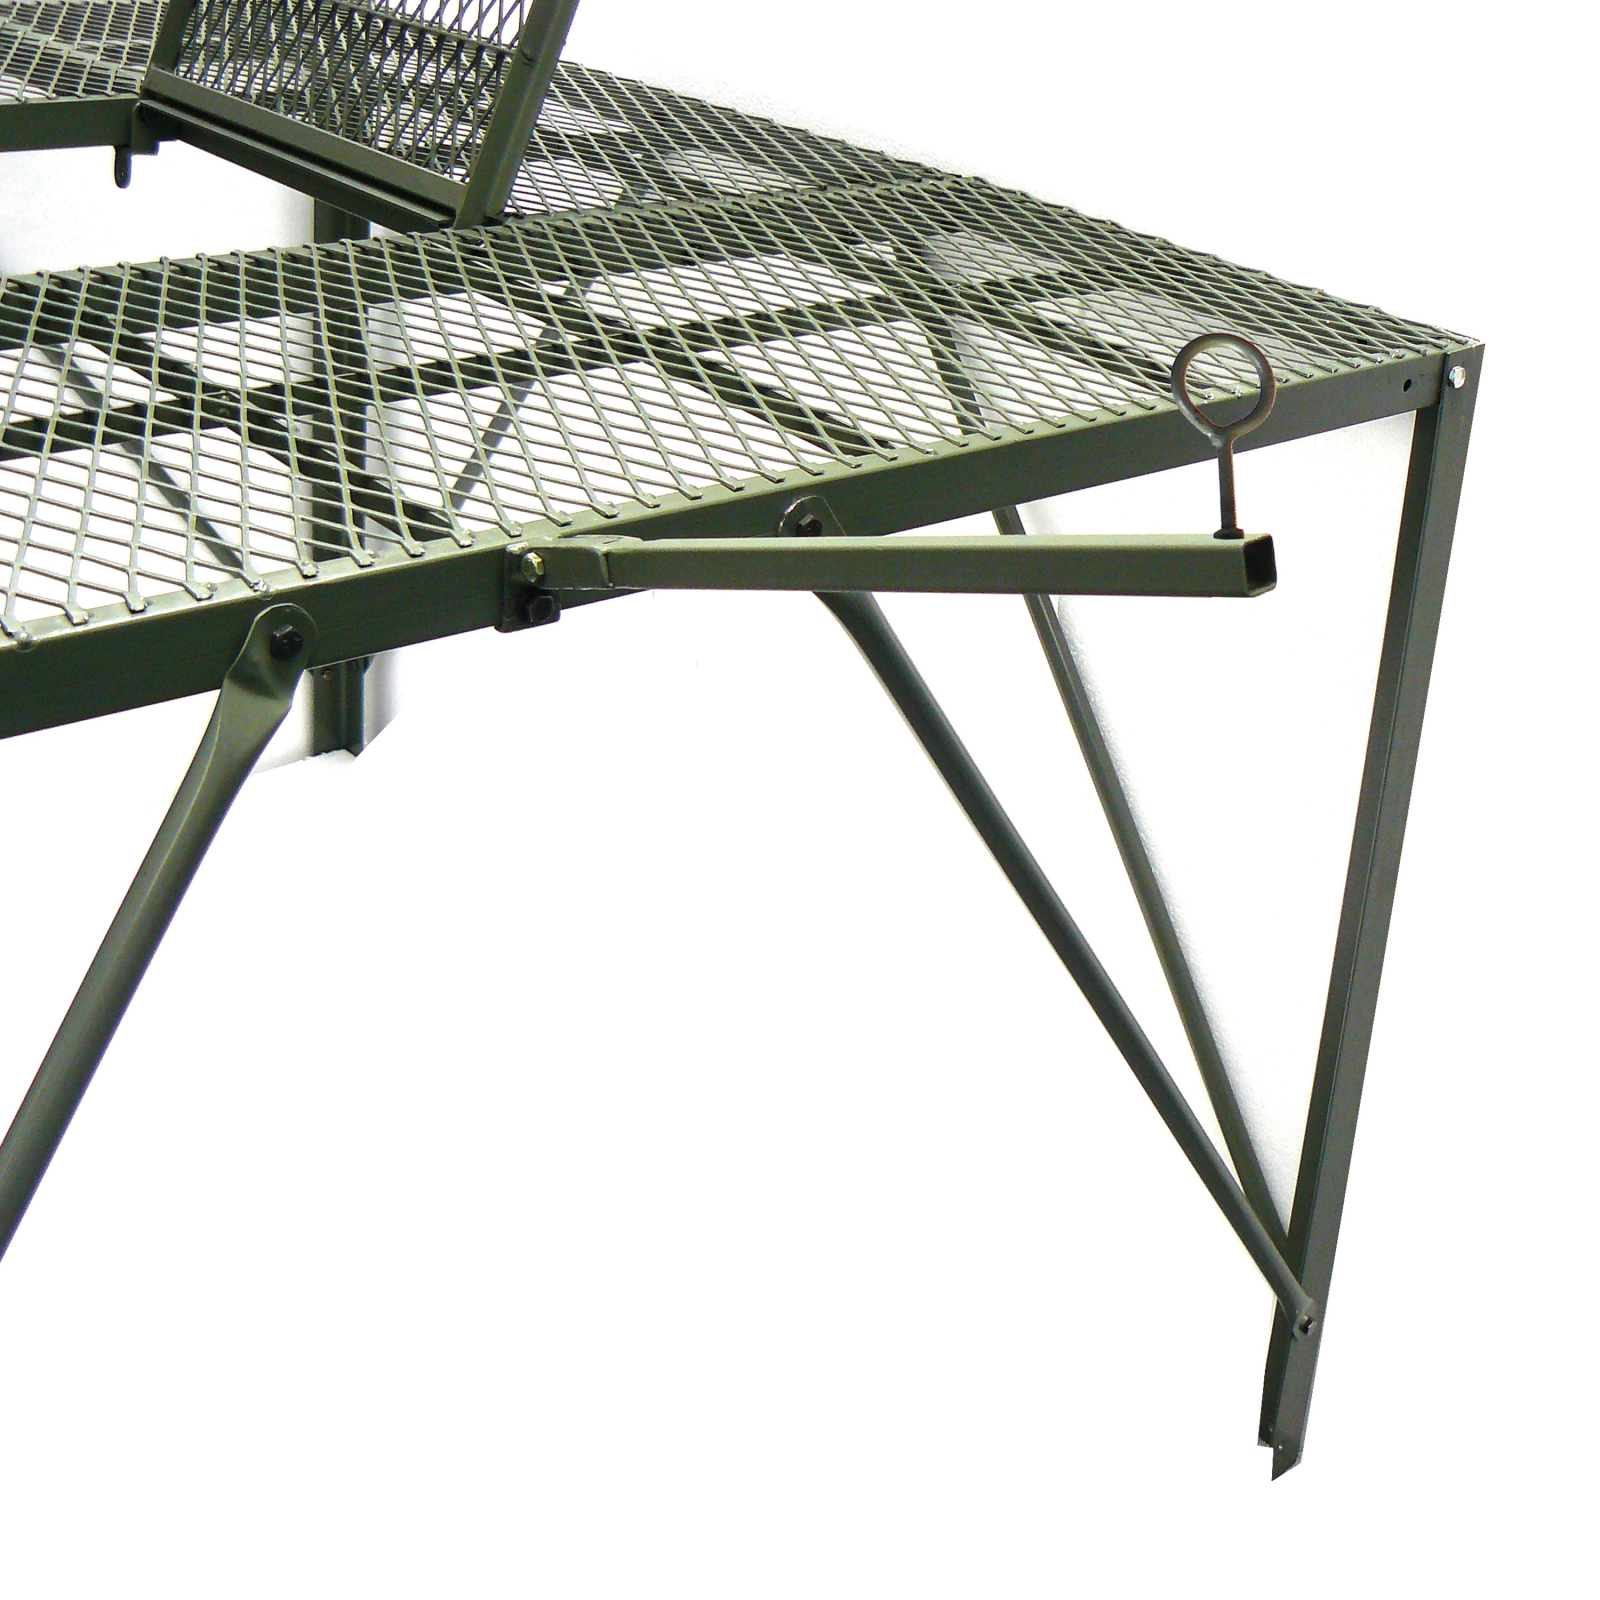 Mossy Oak GameKeeper Elevated Shooting Blind Stand for Hunting